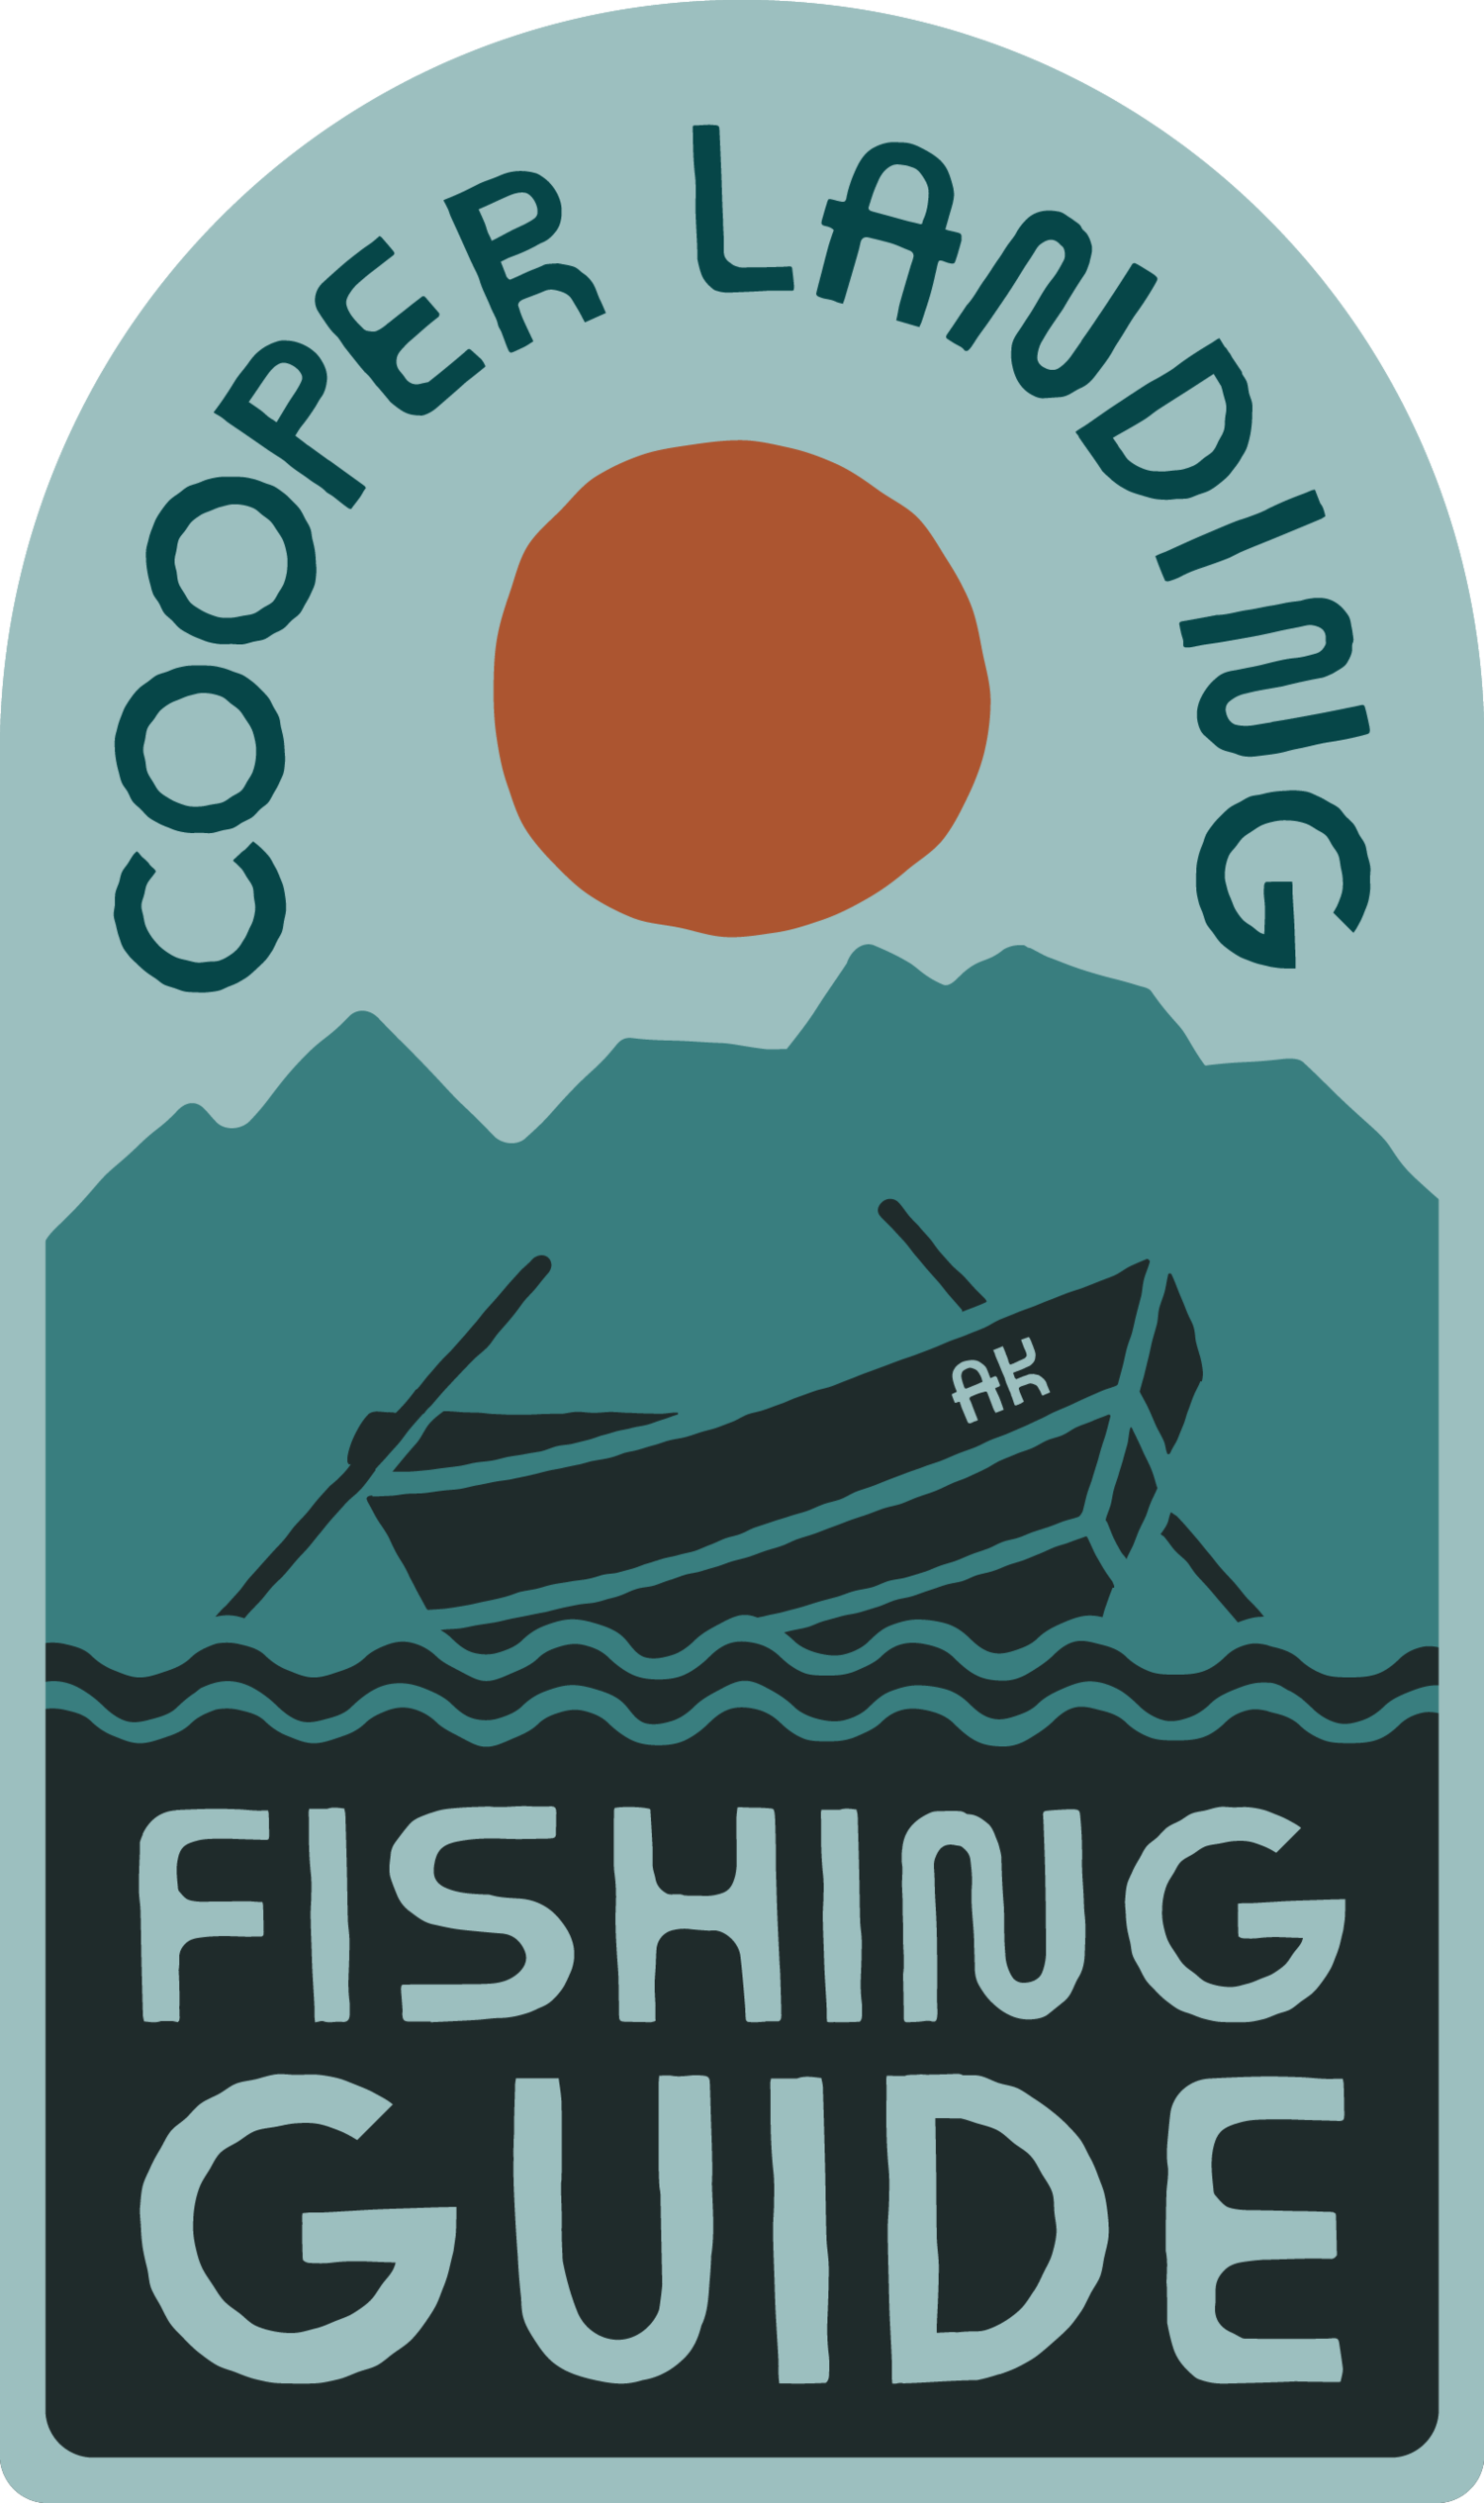 Cooper Landing Fishing Guide, LLC | Kenai River